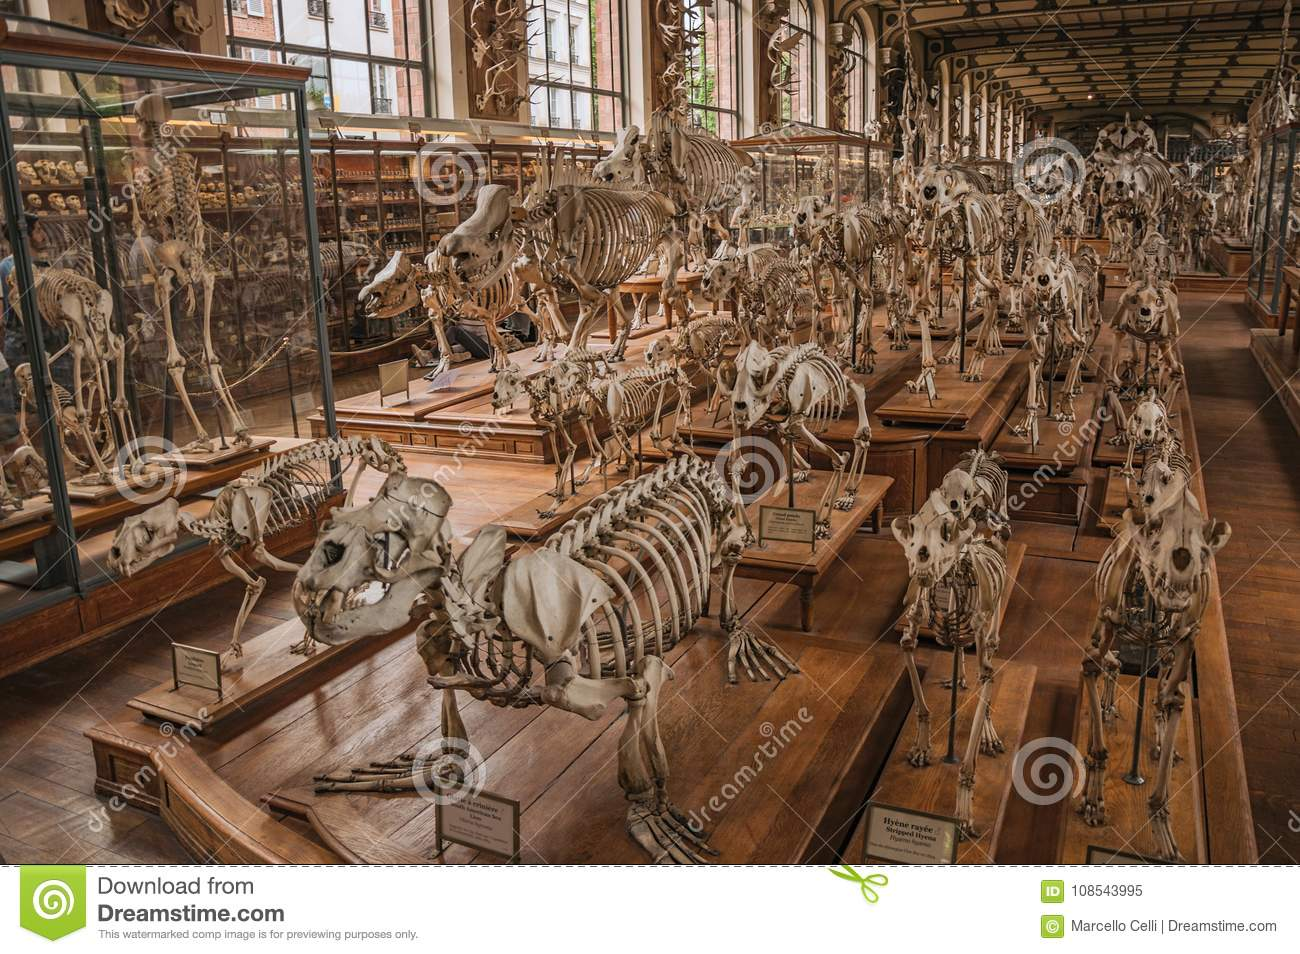 Skeletons Of Animals In The Huge Hall In Gallery Of Paleontology And